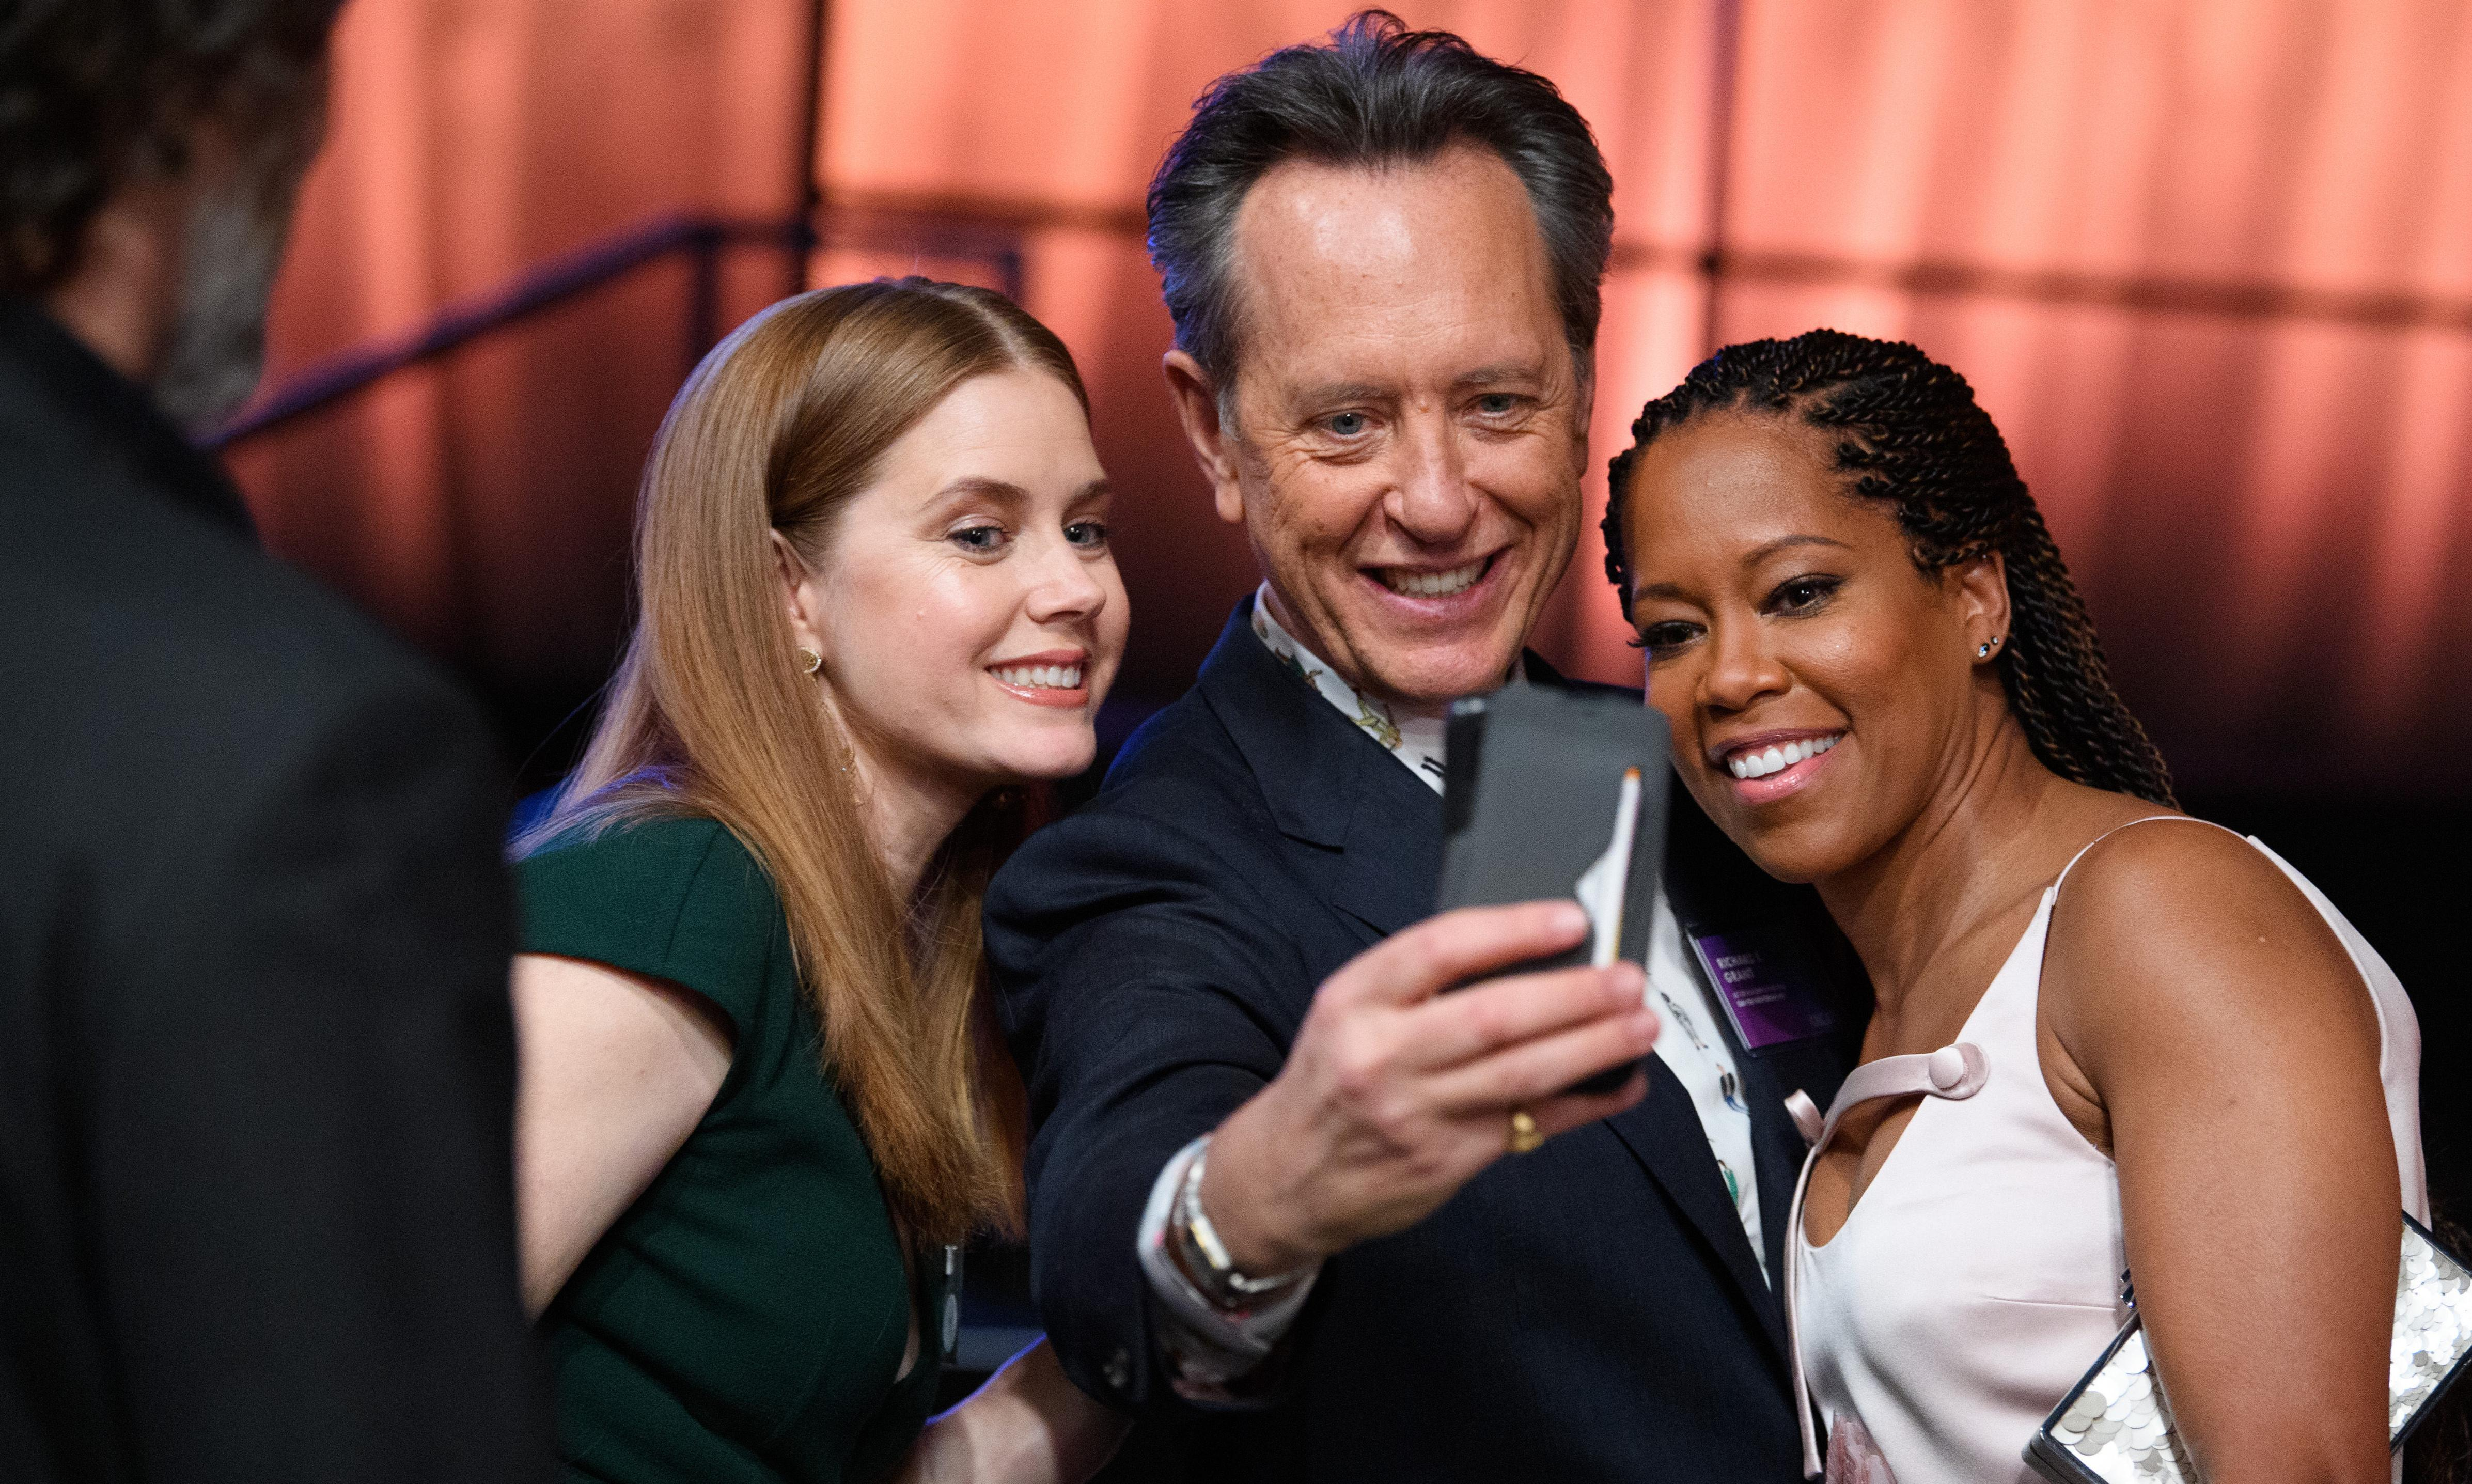 Richard E Grant's Oscar glee: ingenue or a crafty campaigner?